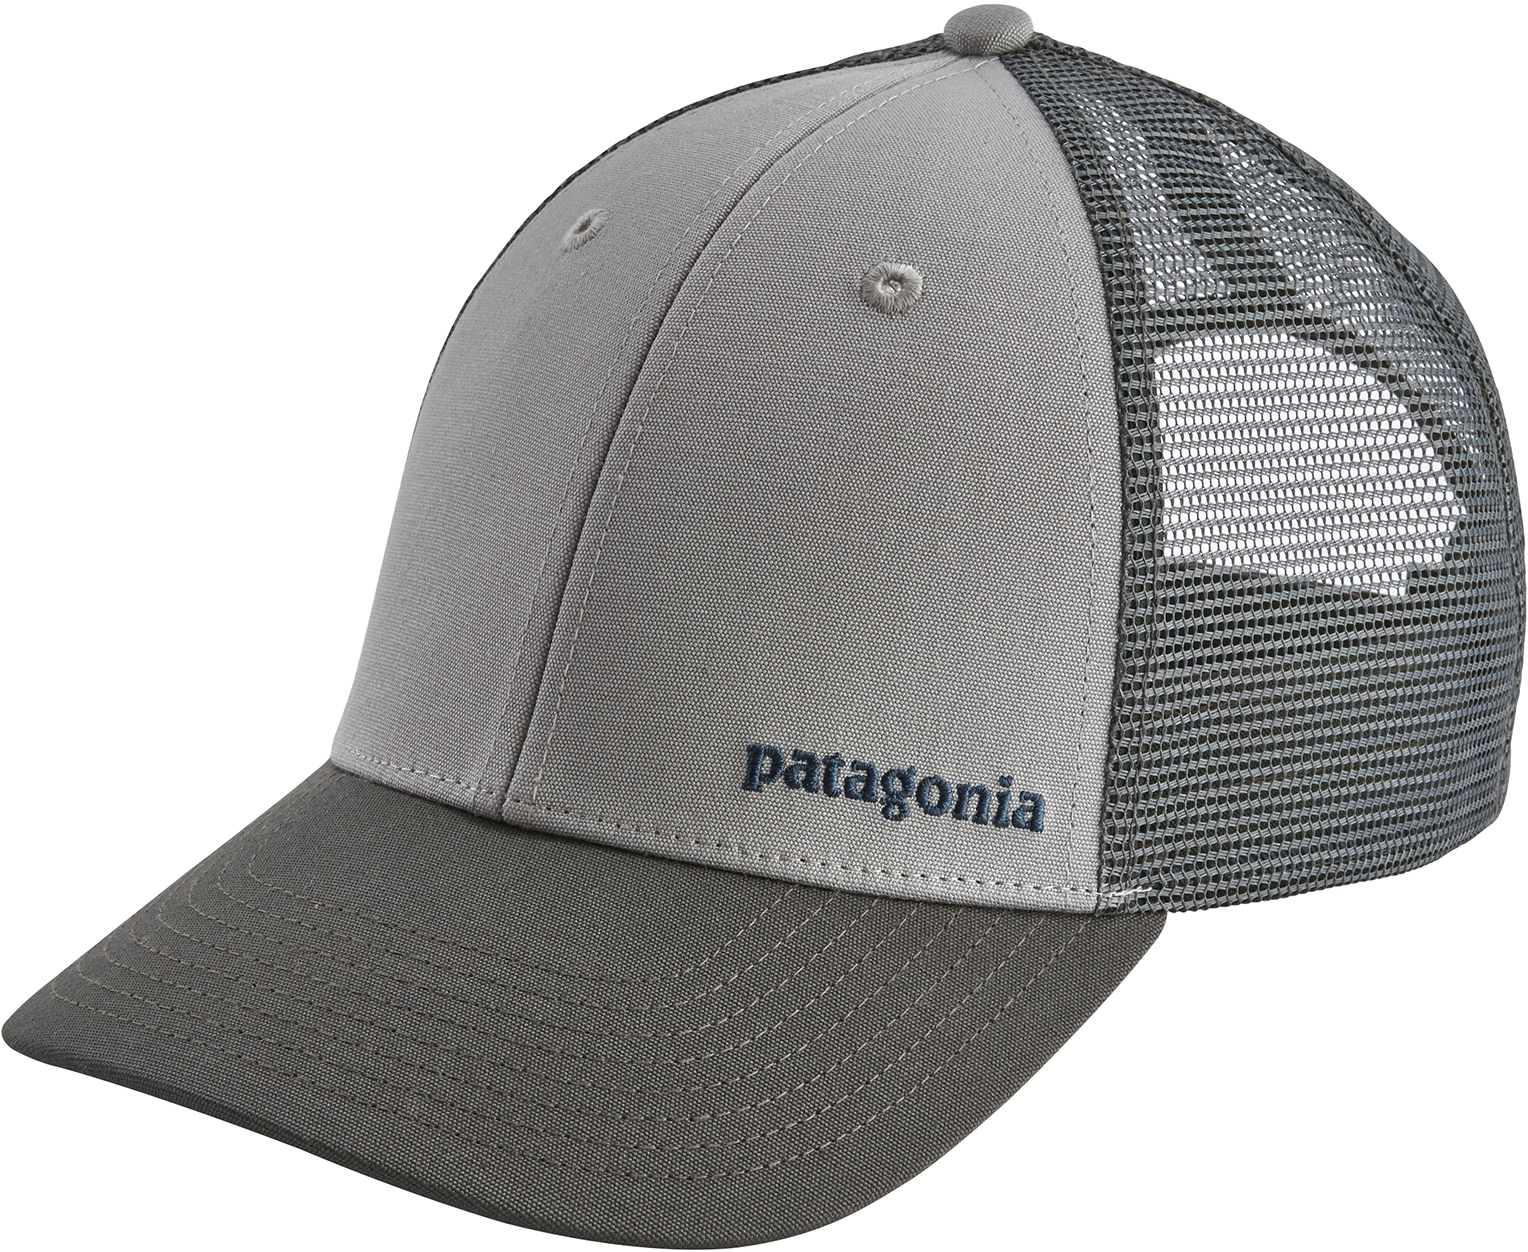 6937e100a6f Patagonia Men s Hats and toques